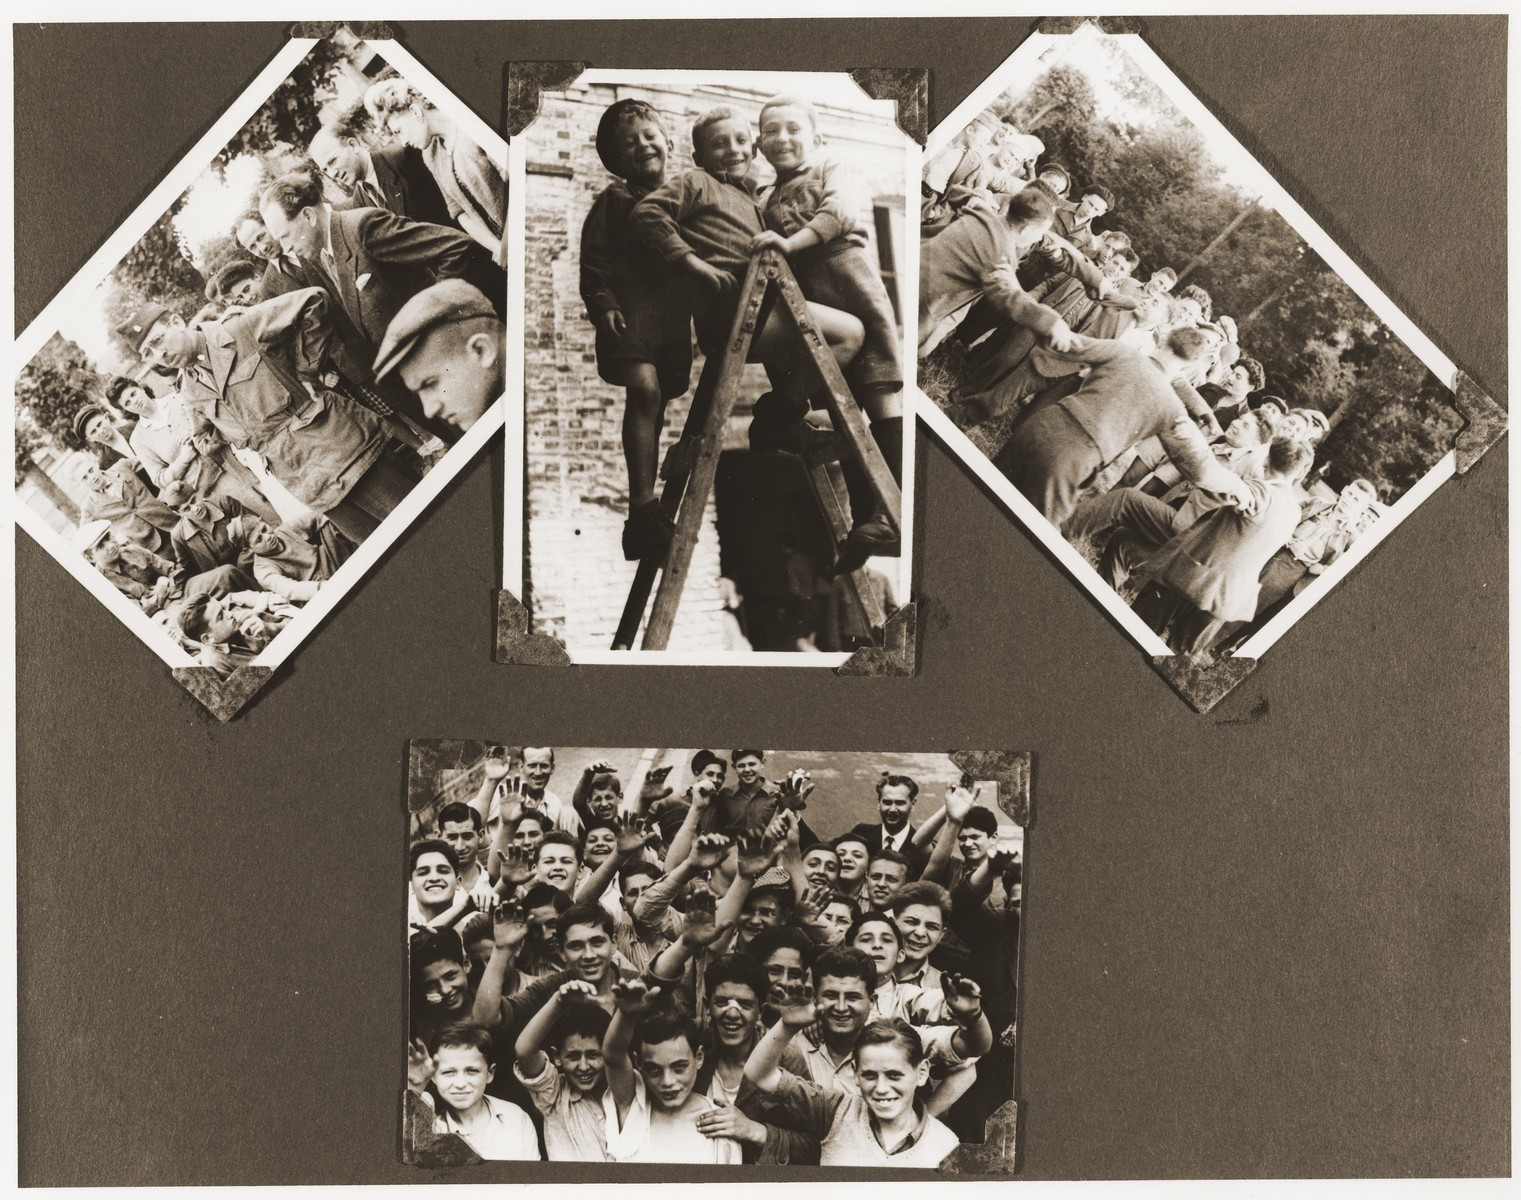 A page from Romek Wajsman's photo album, which includes four photos of members of the Buchenwald children's transport during their stay at the Ecouis children's home.